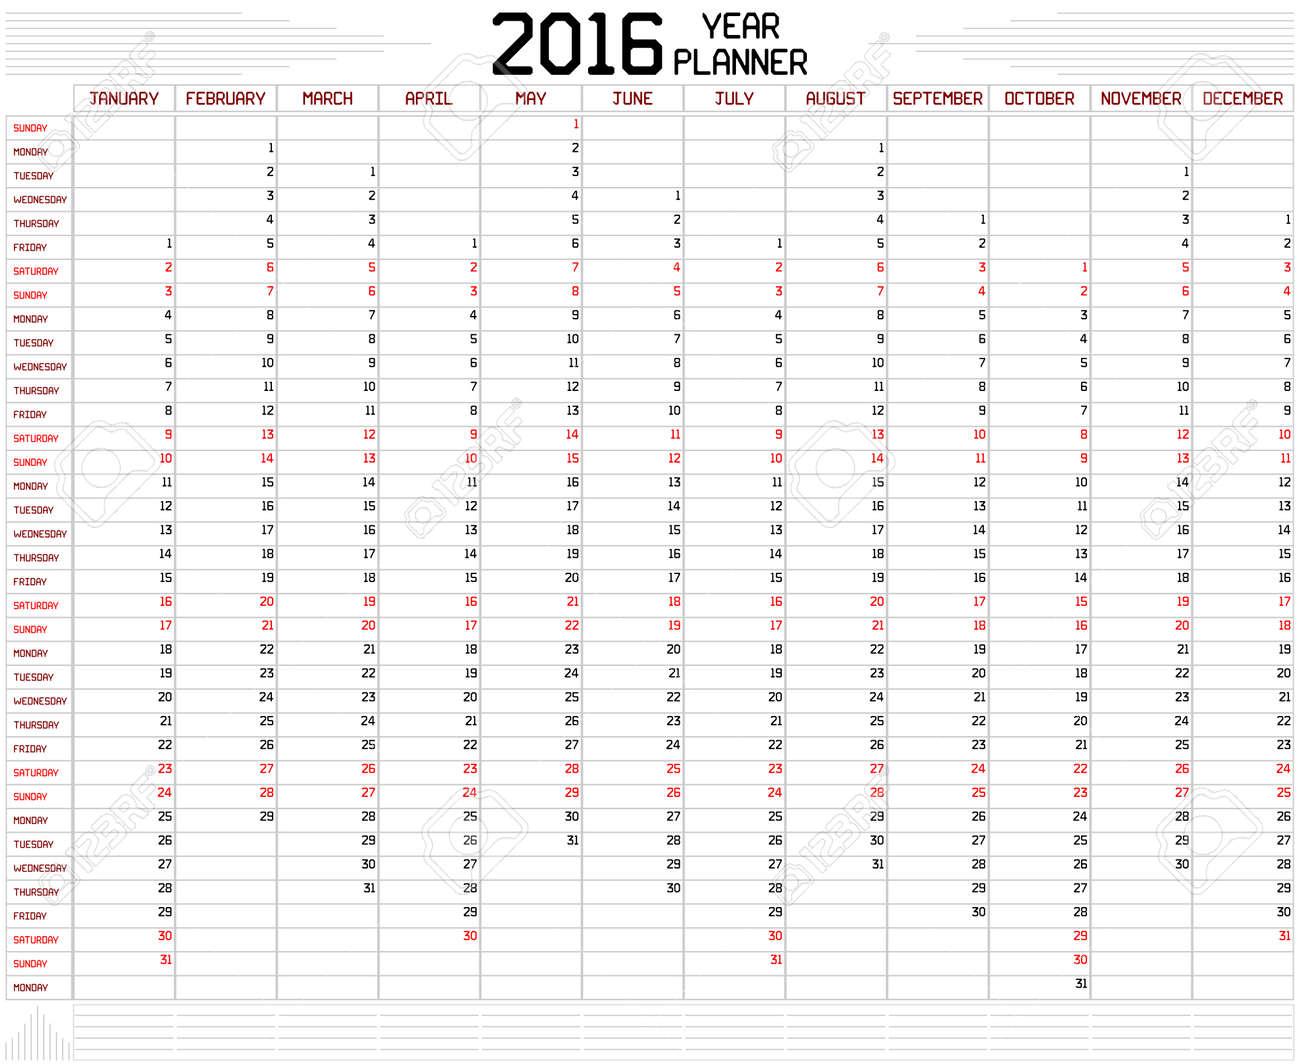 vector year 2016 planner an annual planner calendar for the year 2016 on white a custom straight lines thick font is used